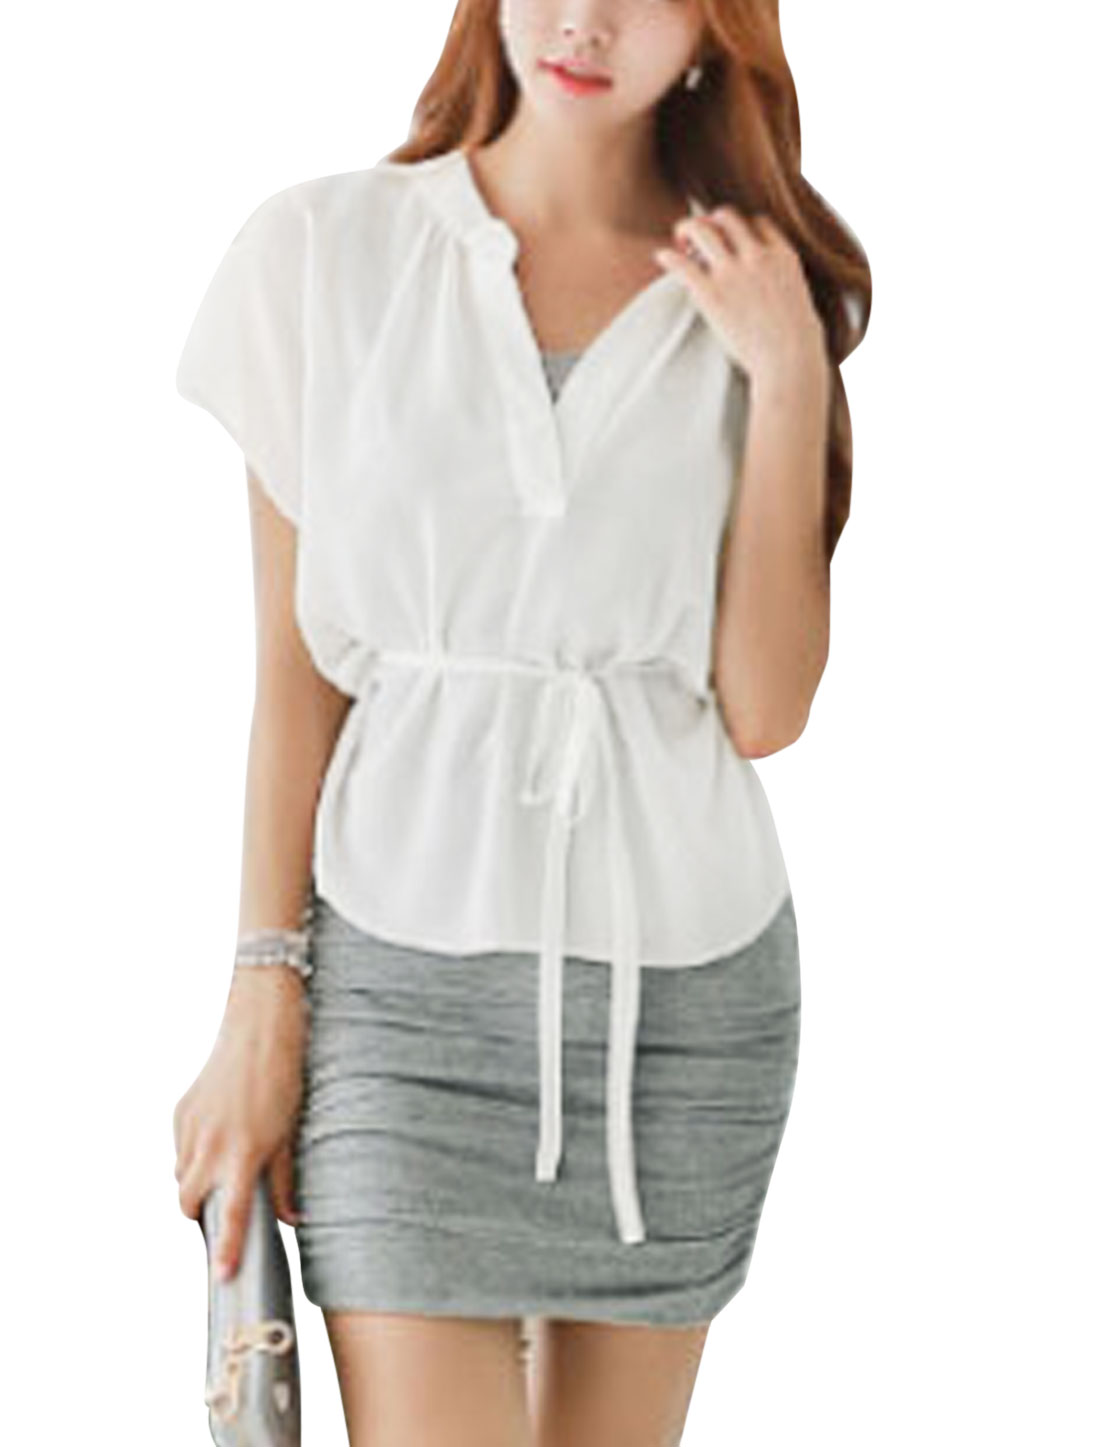 Women Split Neck White Chiffon Top w Sleeveless Sheath Dress Light Gray M